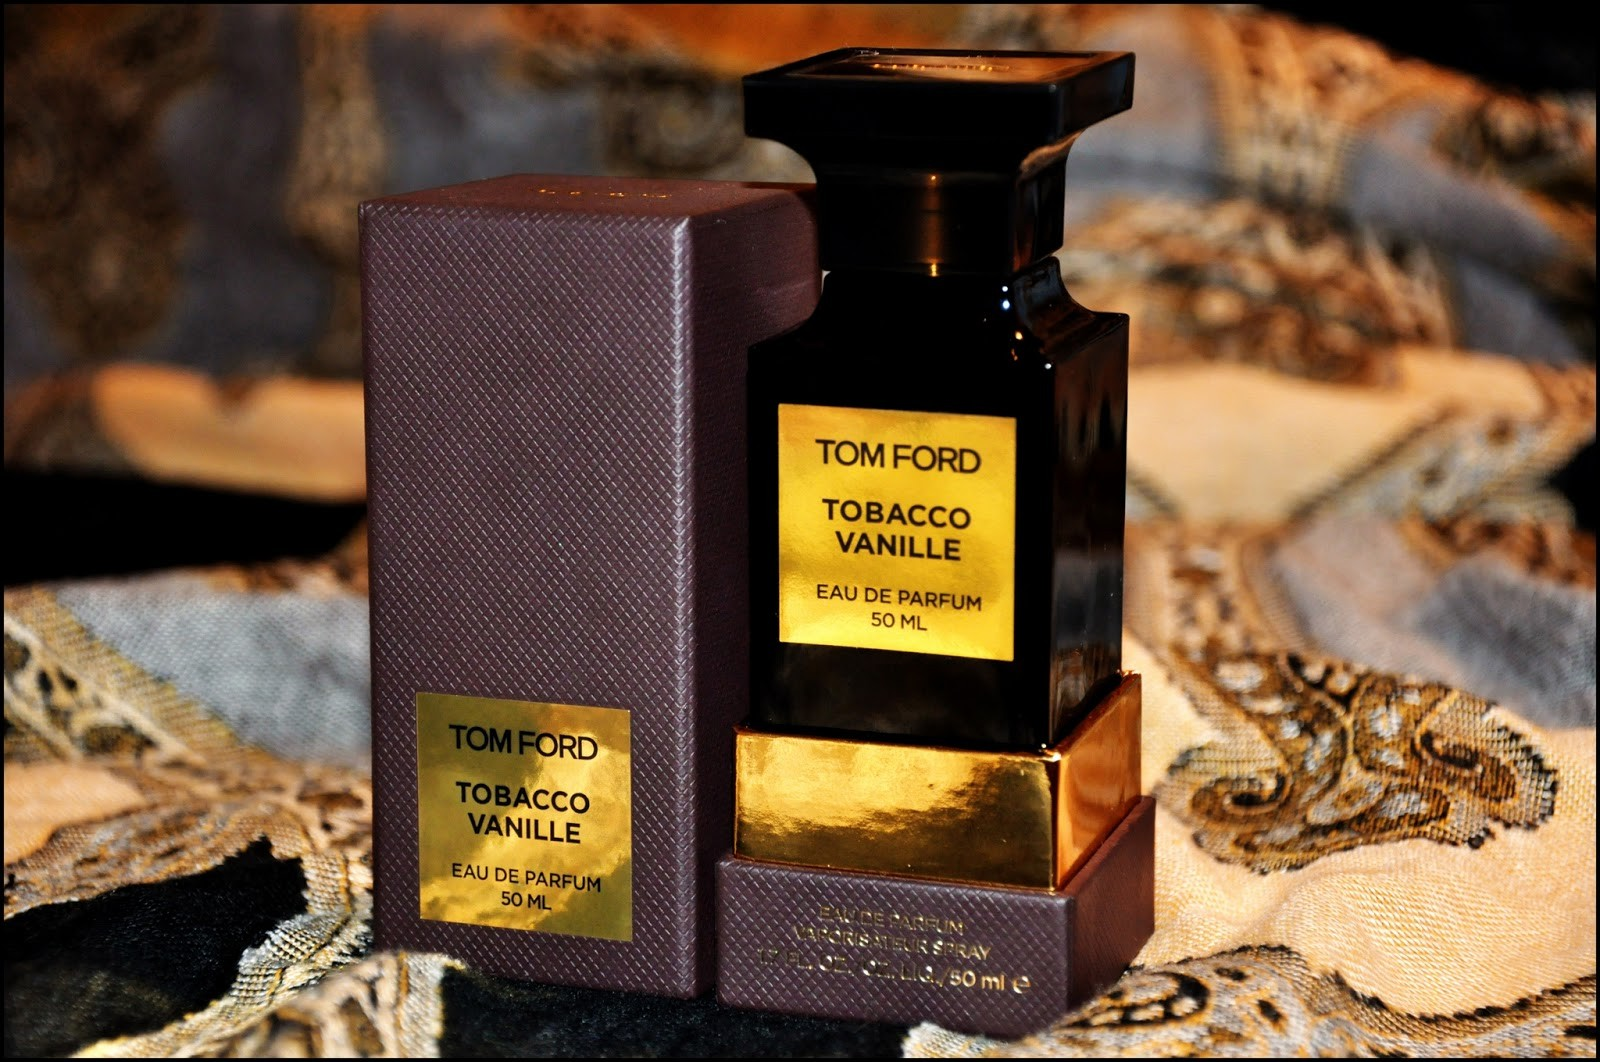 Tobacco Vanille 50ml edp Tom Ford - ♀♂ унисекс парфюм, 2007 год.